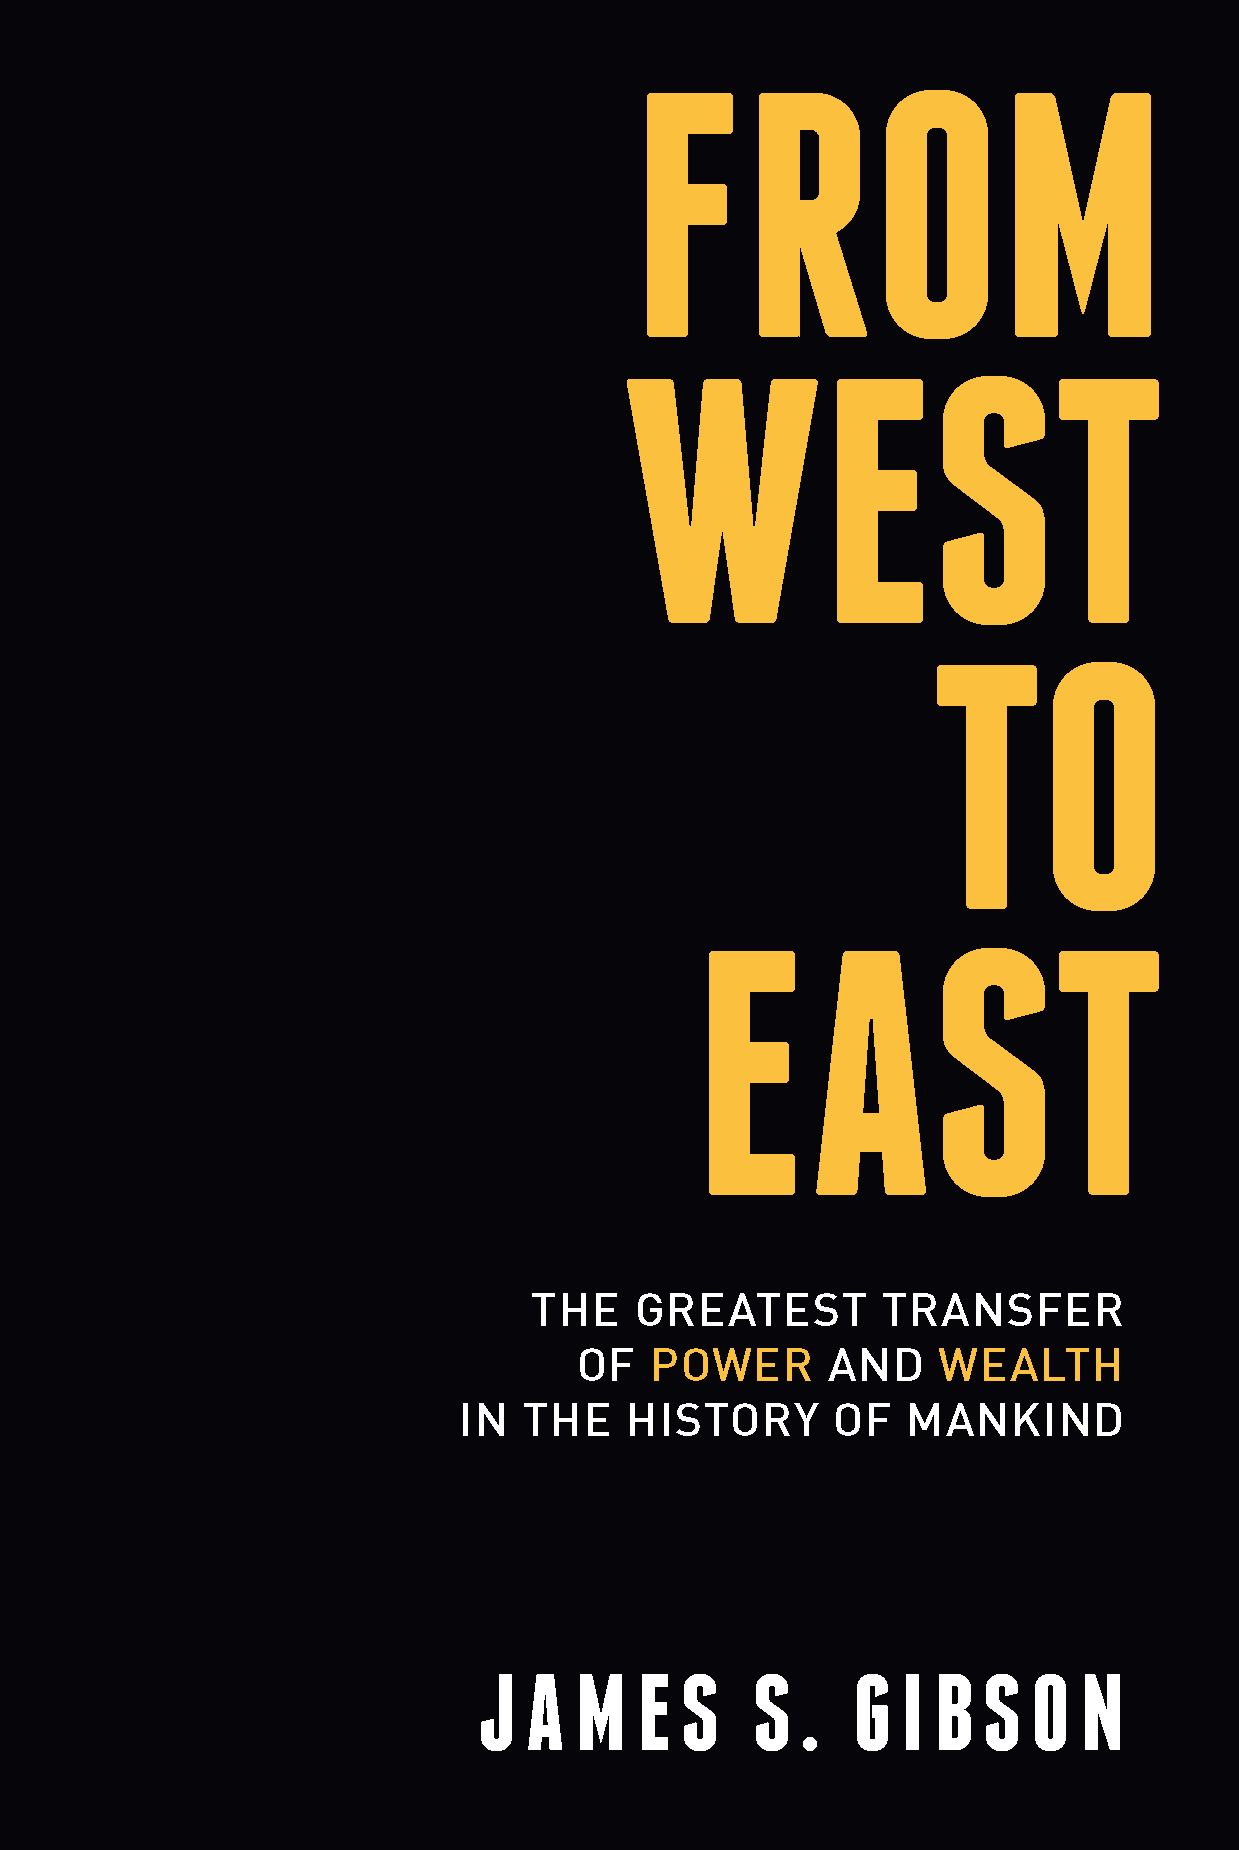 Buy 'From West to East' on Amazon